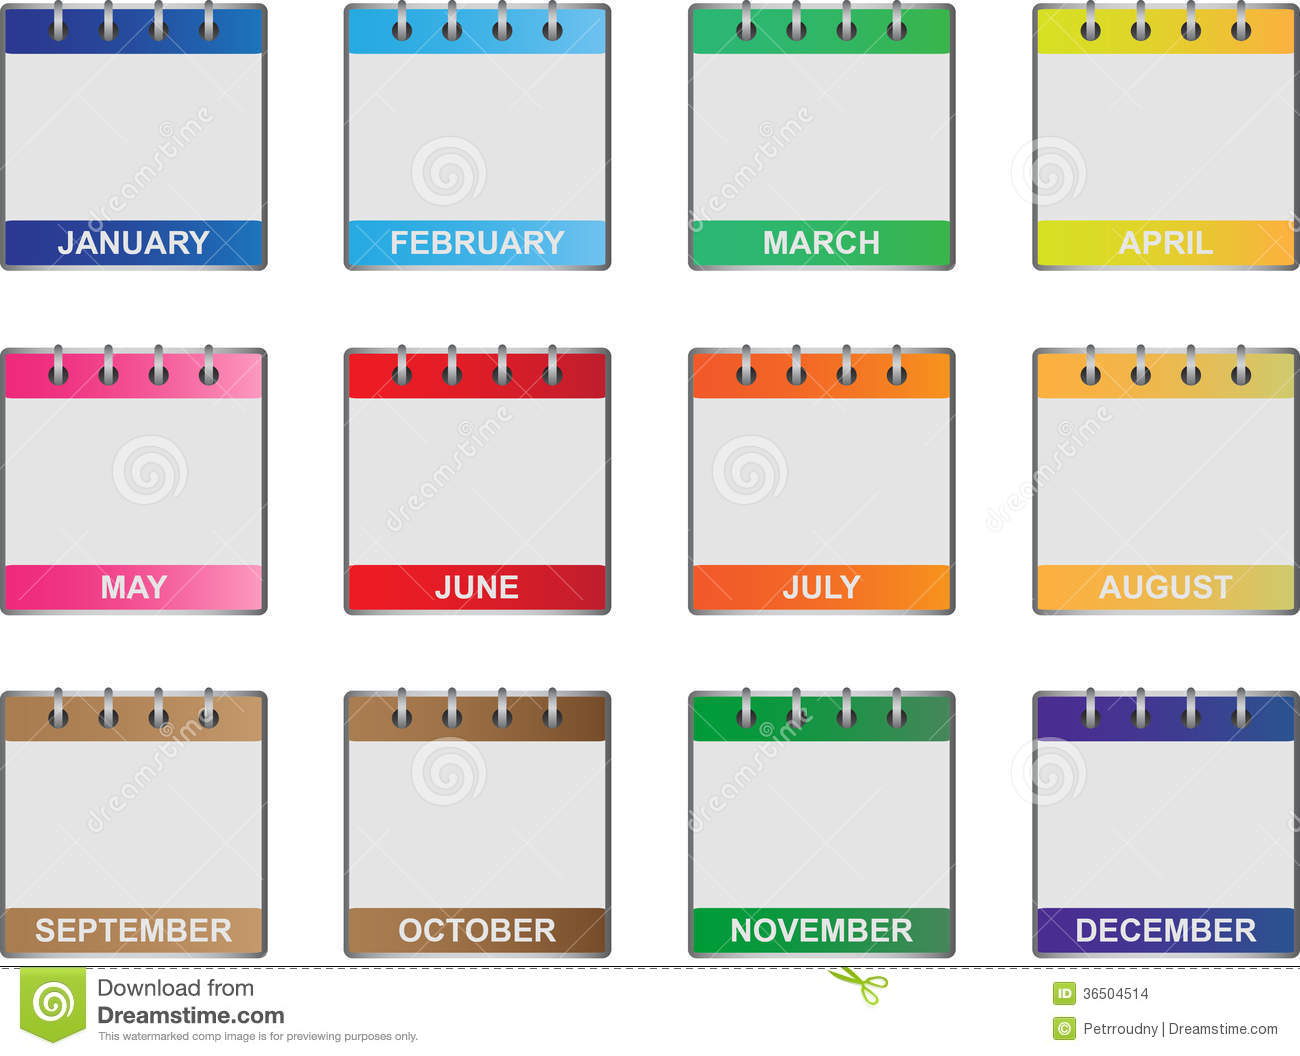 32 Helpful Blank Monthly Calendars